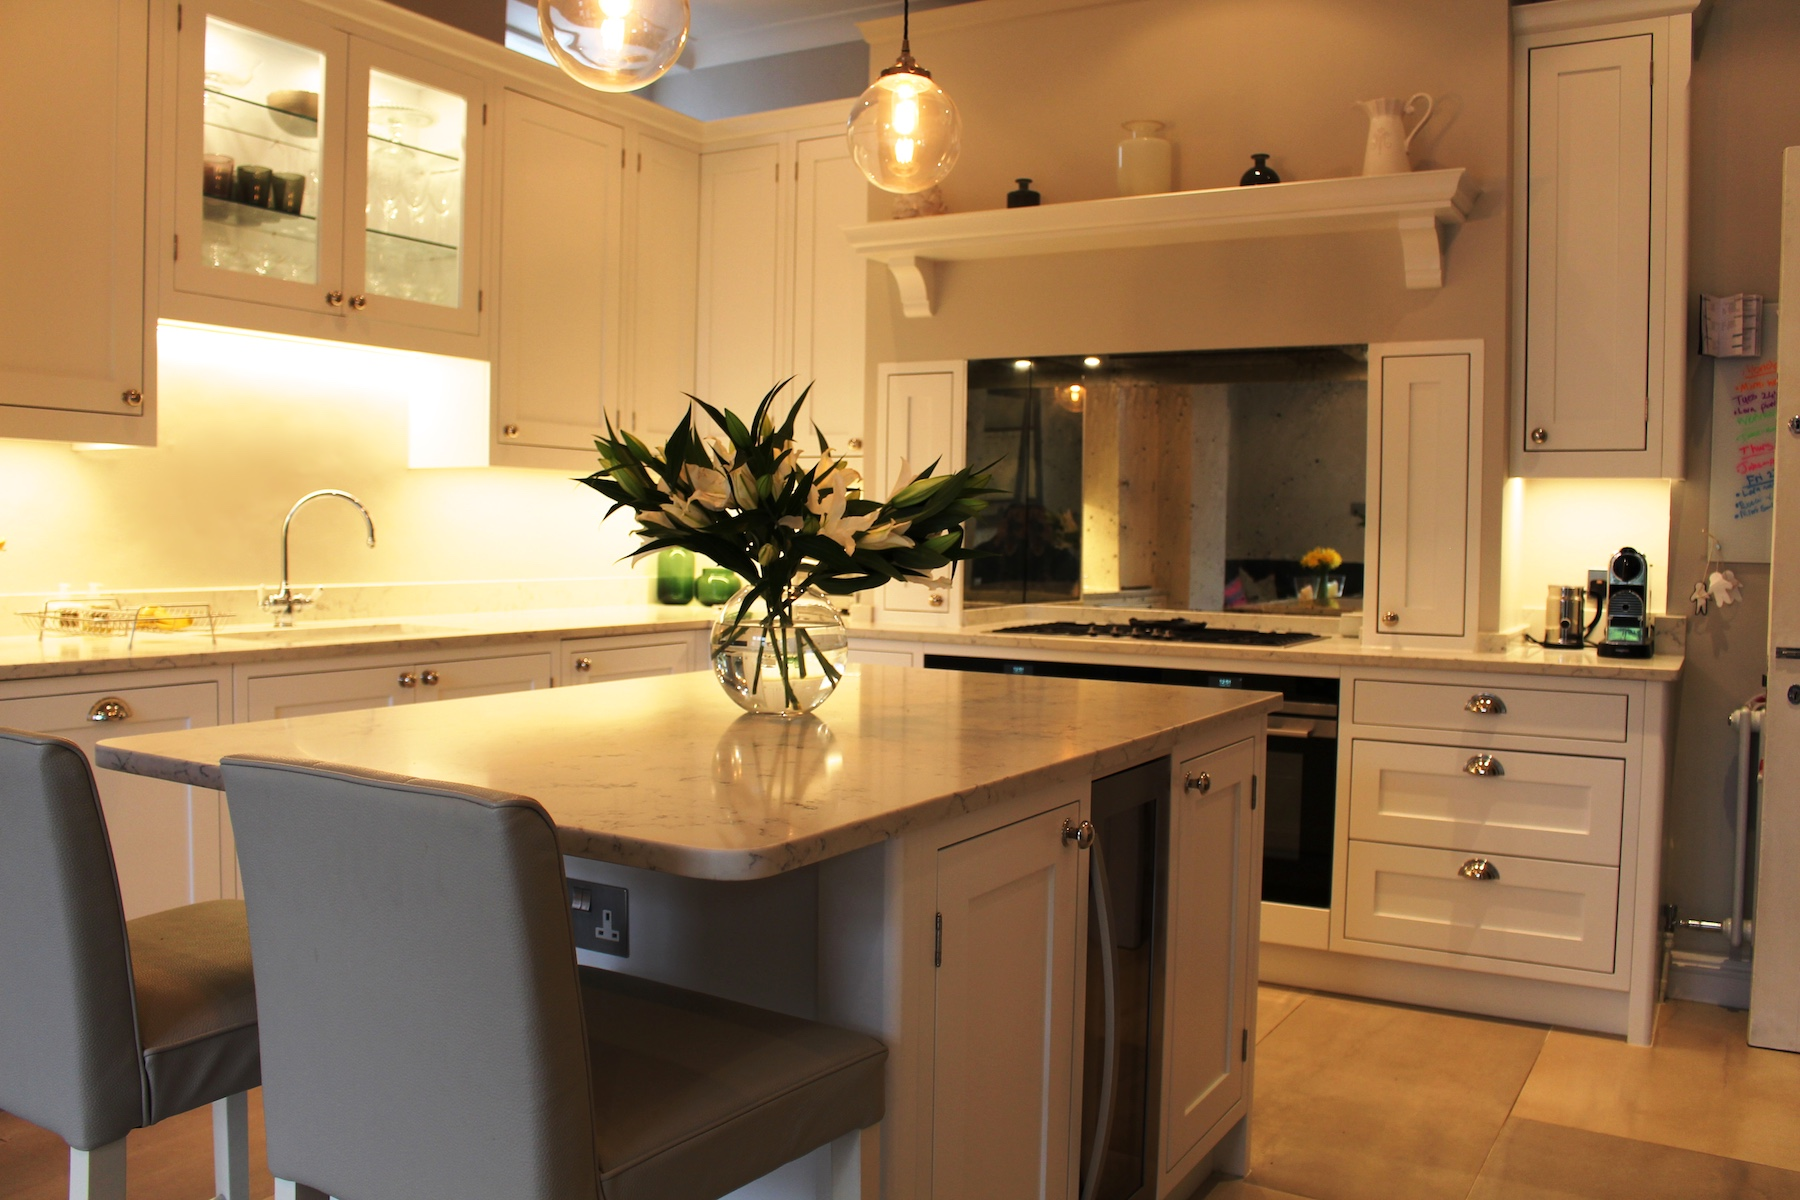 White Shaker Kitchen Company Ascot Binfield Warfield Winkfield Bracknell 989.jpg